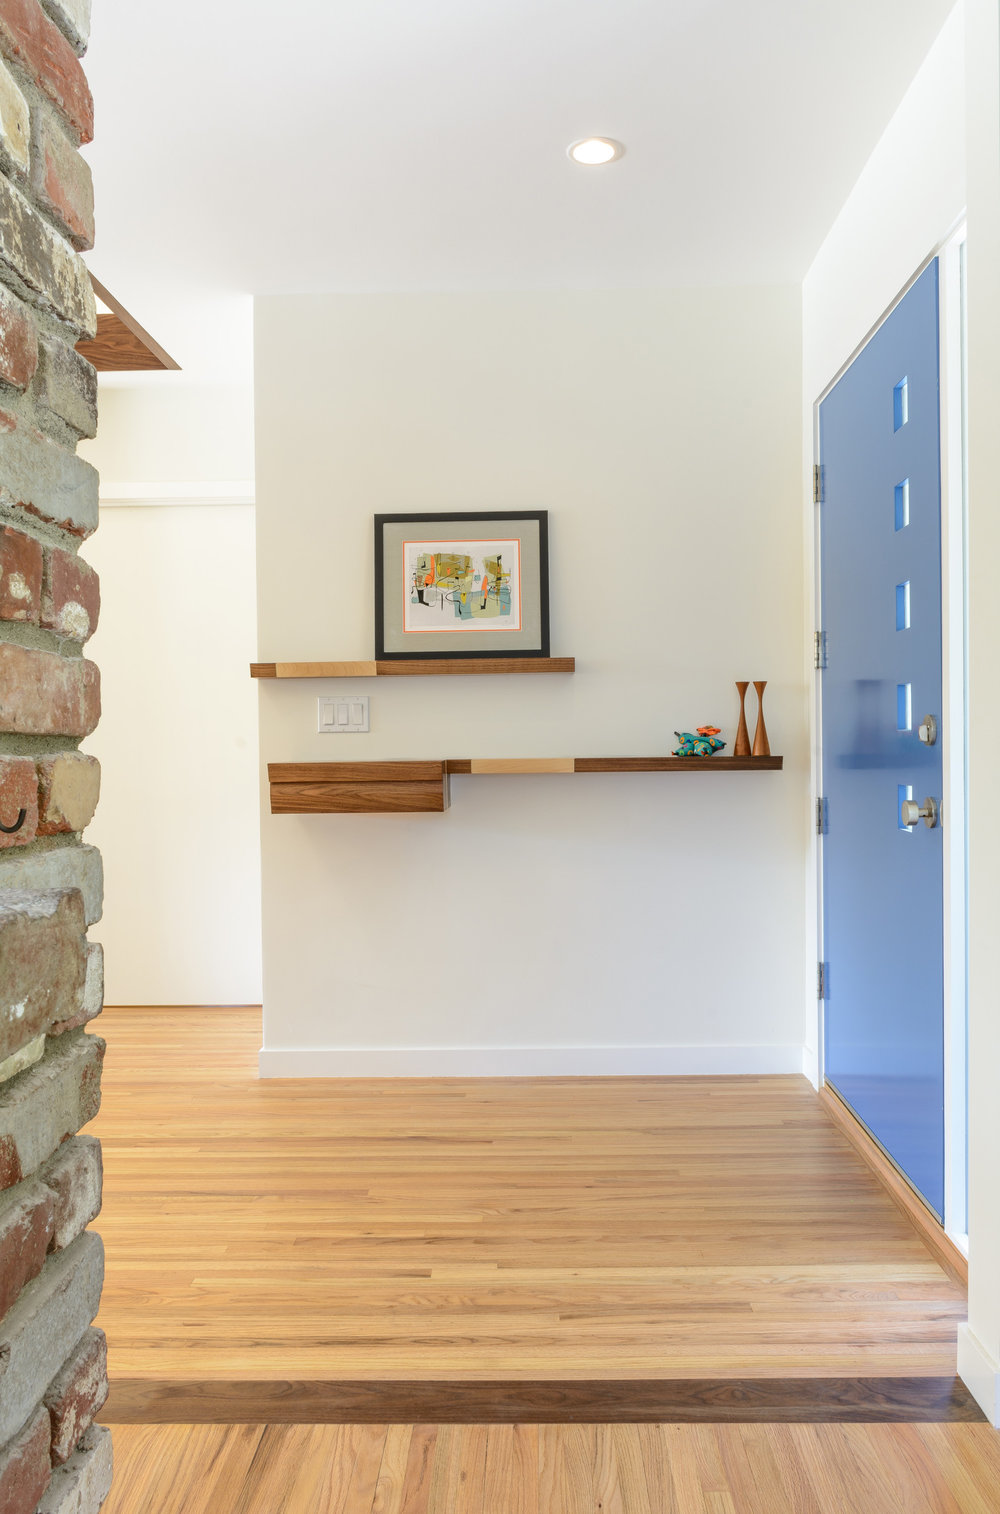 A continued welcome: bright open foyer with white walls, recessed lighting, the blue modern front door with square lites, walnut and maple floating shelves and accent floor pieces